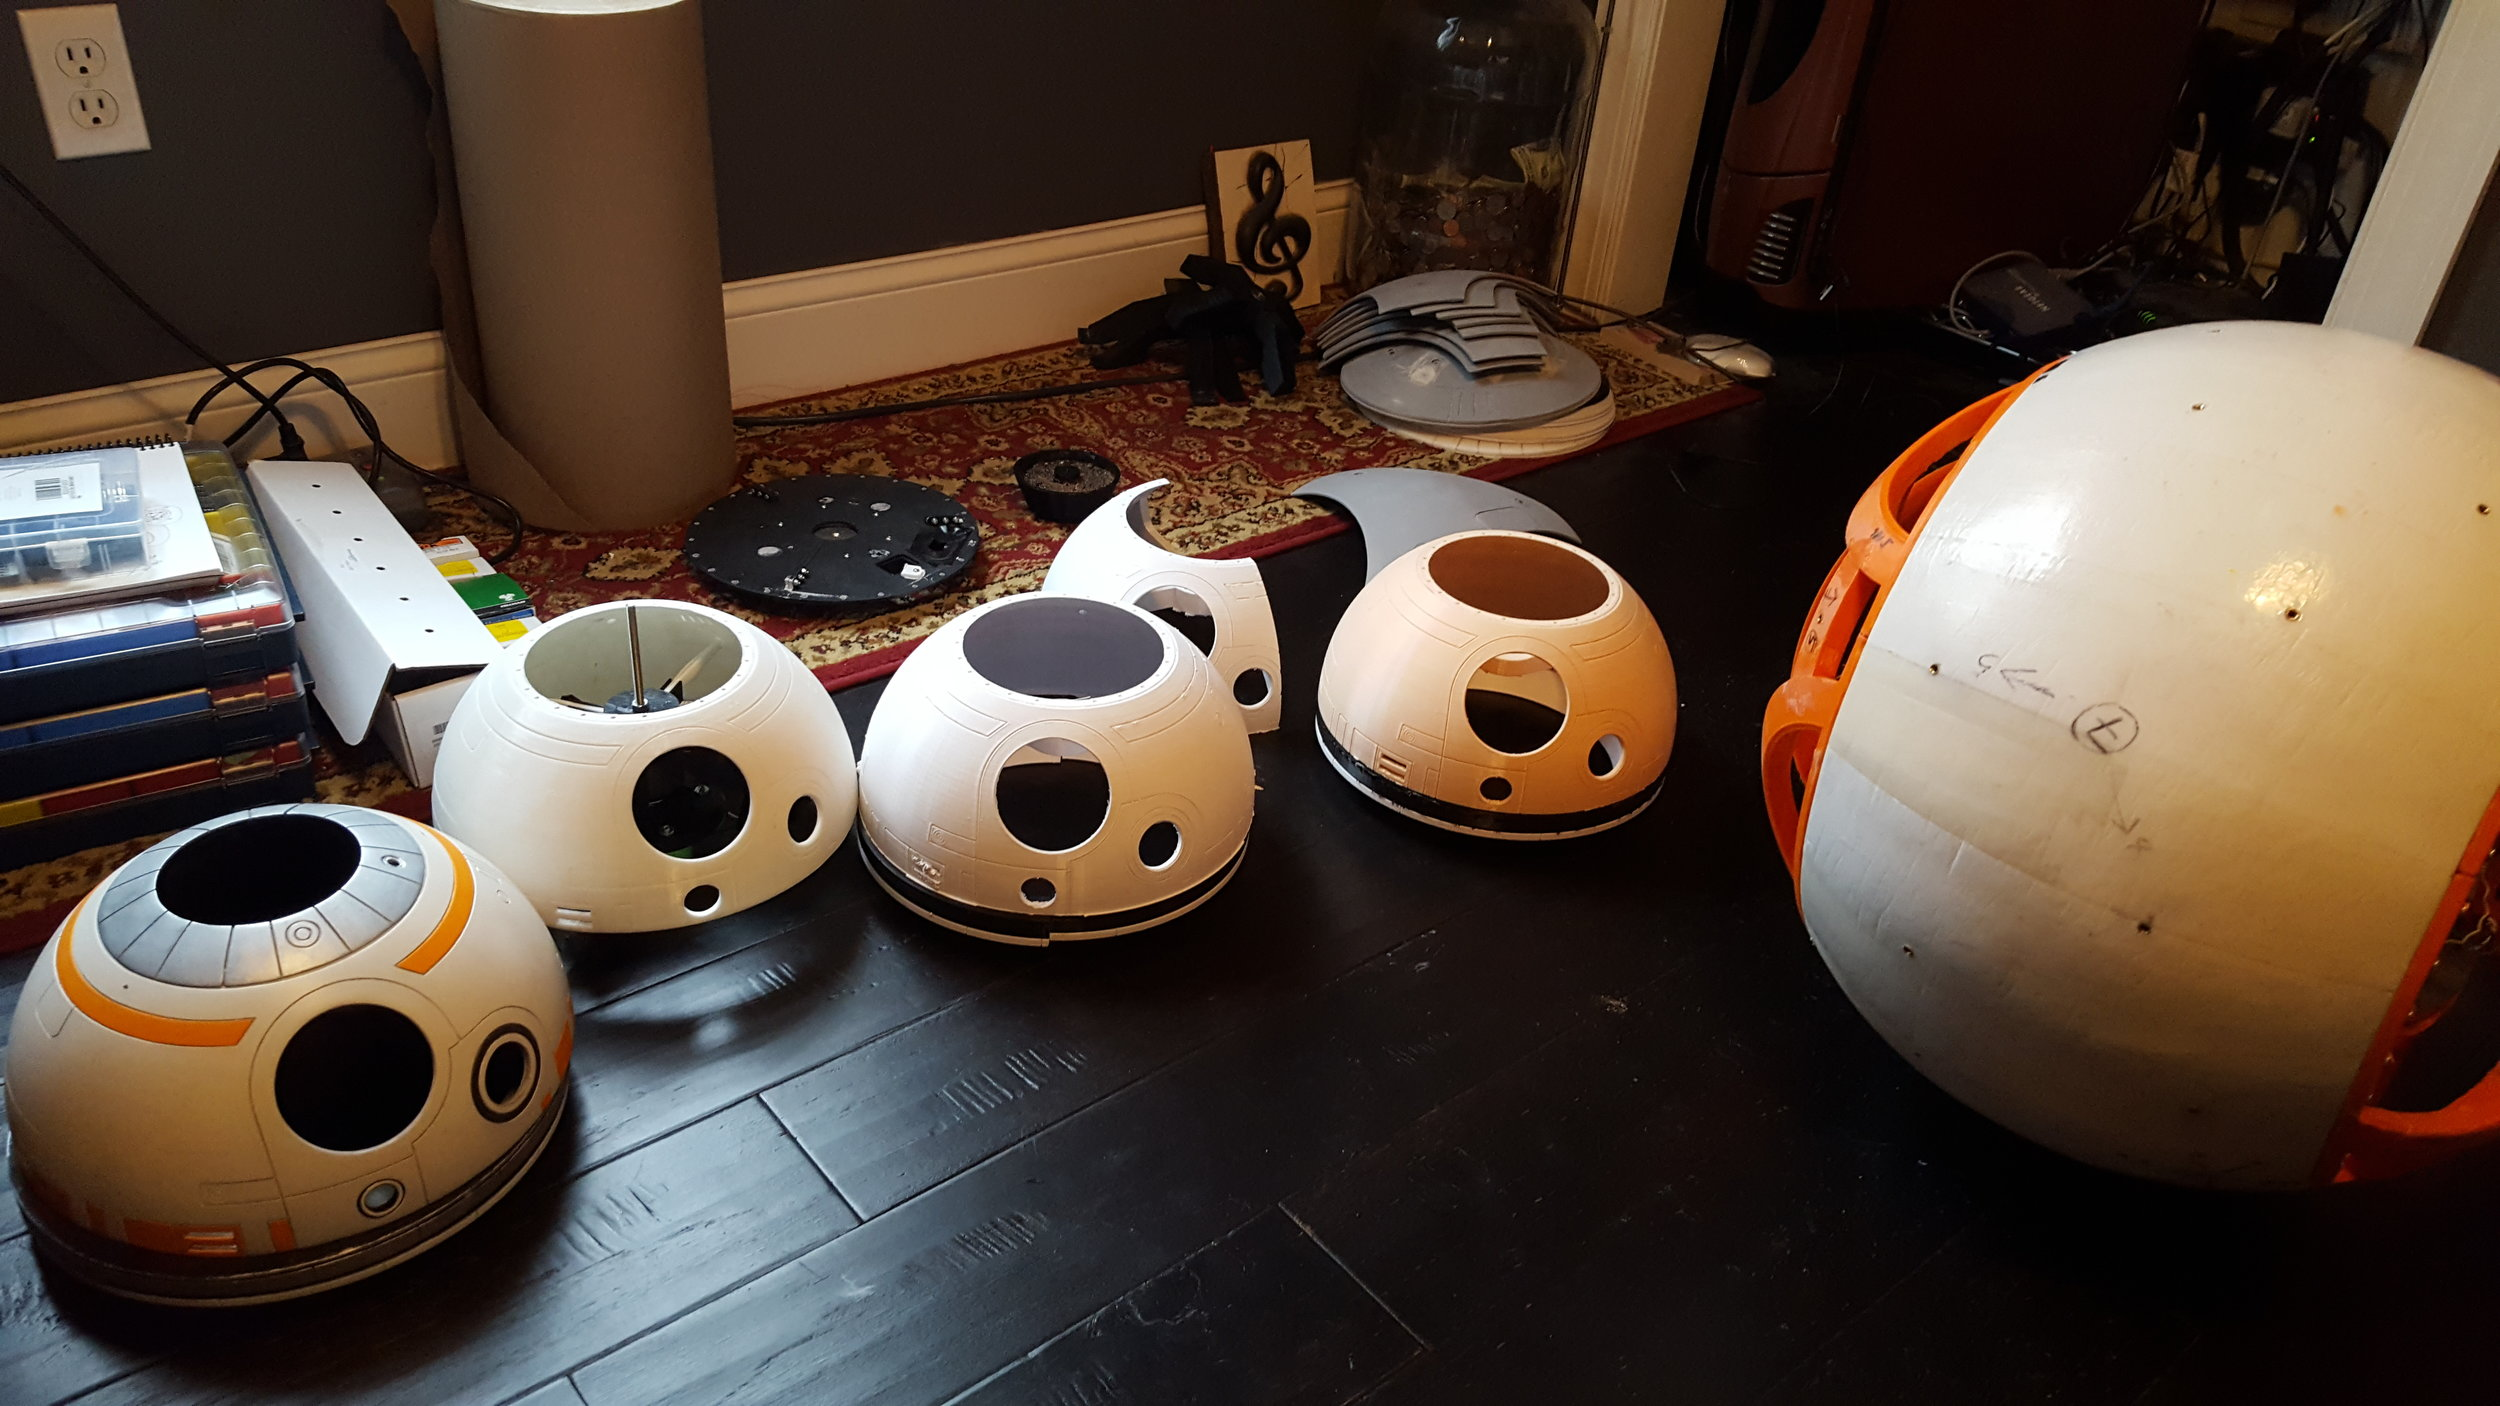 Here you can see my current dome collection. The one on the far left is my first /completed dome. The one on the far right is what will likely become int he final dome.